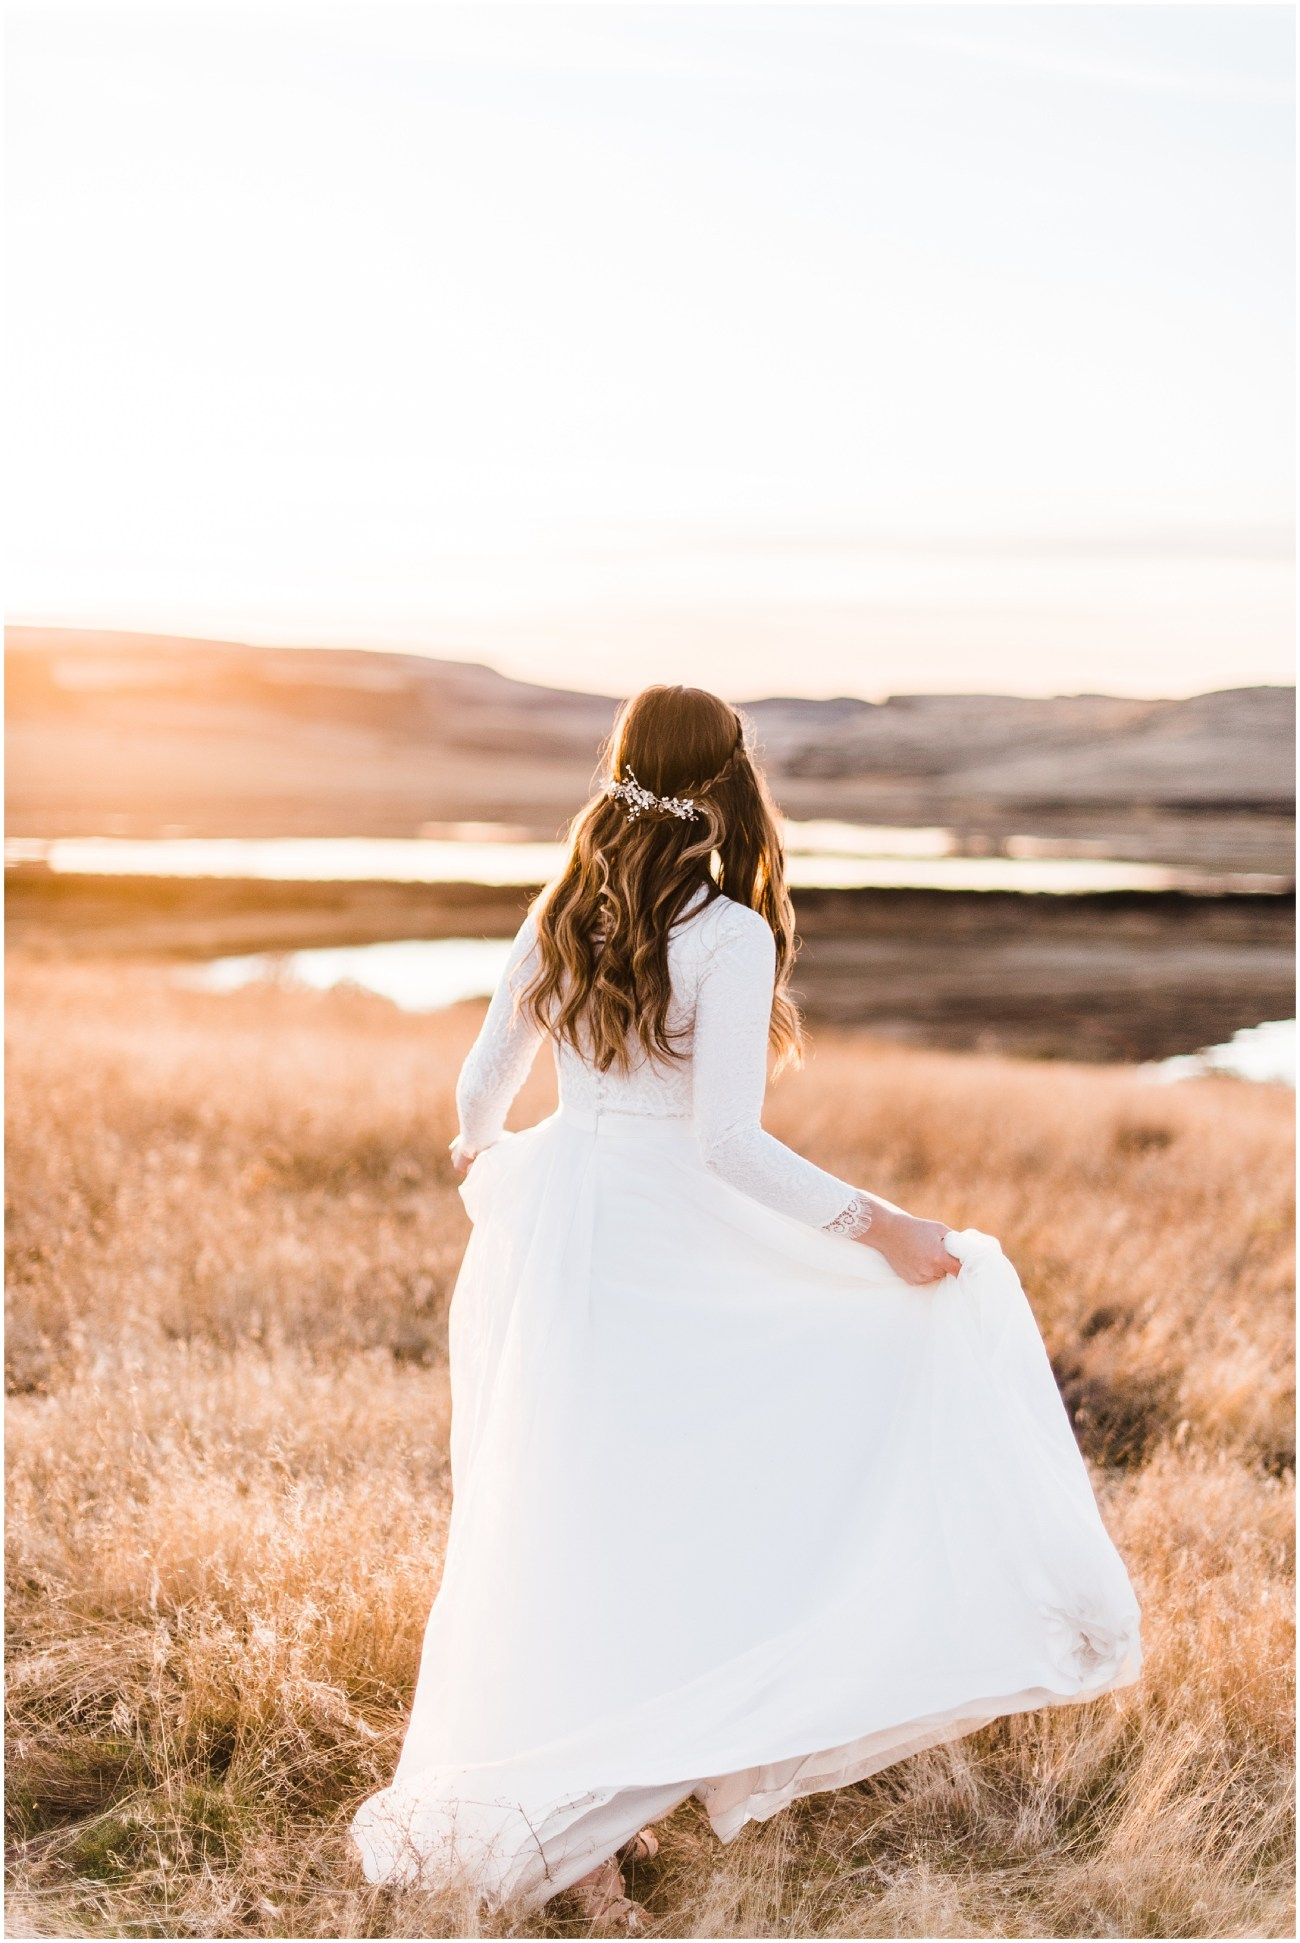 Photo of a Bride twirling in a meadow sunset by Forthright Photo